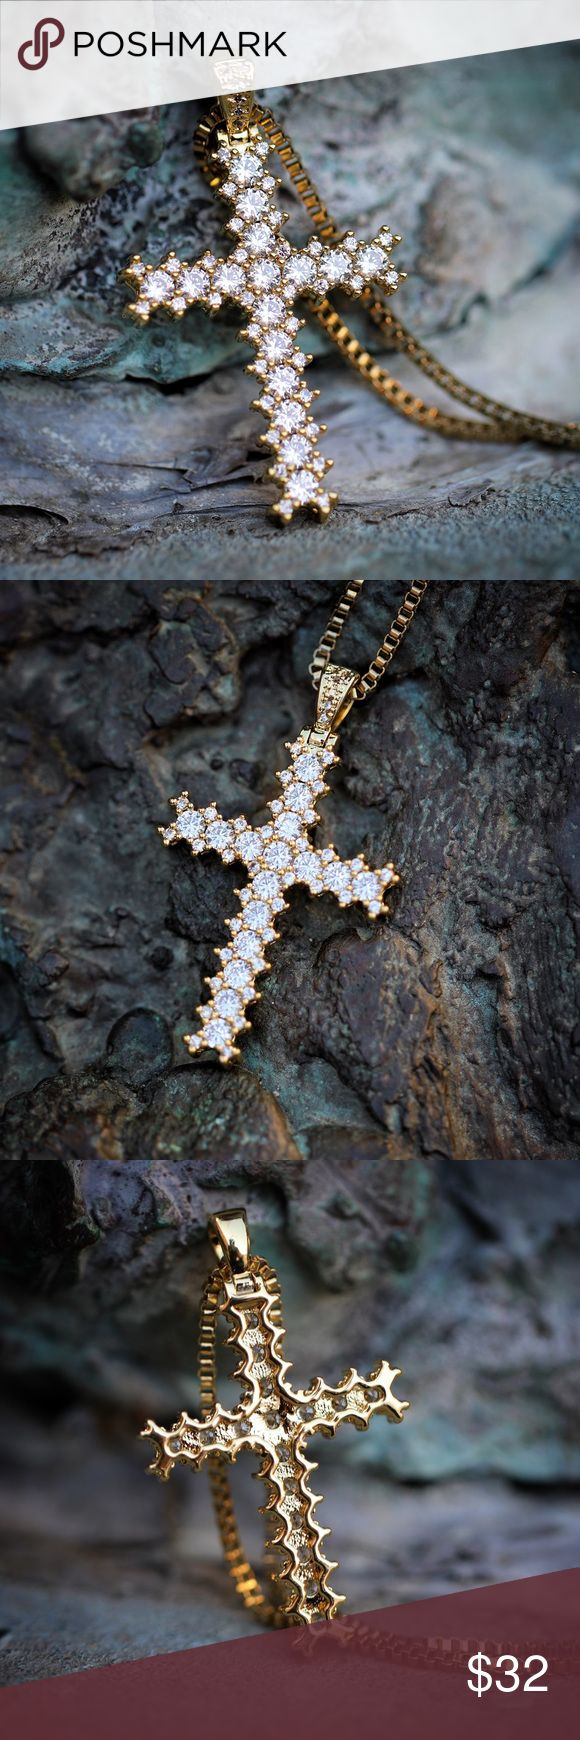 Gold Lab Diamond Princess Cut Cross Necklace Small Yellow Gold Lab Diamond Princess Cut Cross Necklace  Small size 25mm in length.  Chain is 14k gold plated over 316 stainless steel.  White lab simulated diamonds.  1.5mm width 18,20,22,24,26 or 30 inch 14k gold plated 316 stainless steel box chain included. TSV jewelers Jewelry Necklaces